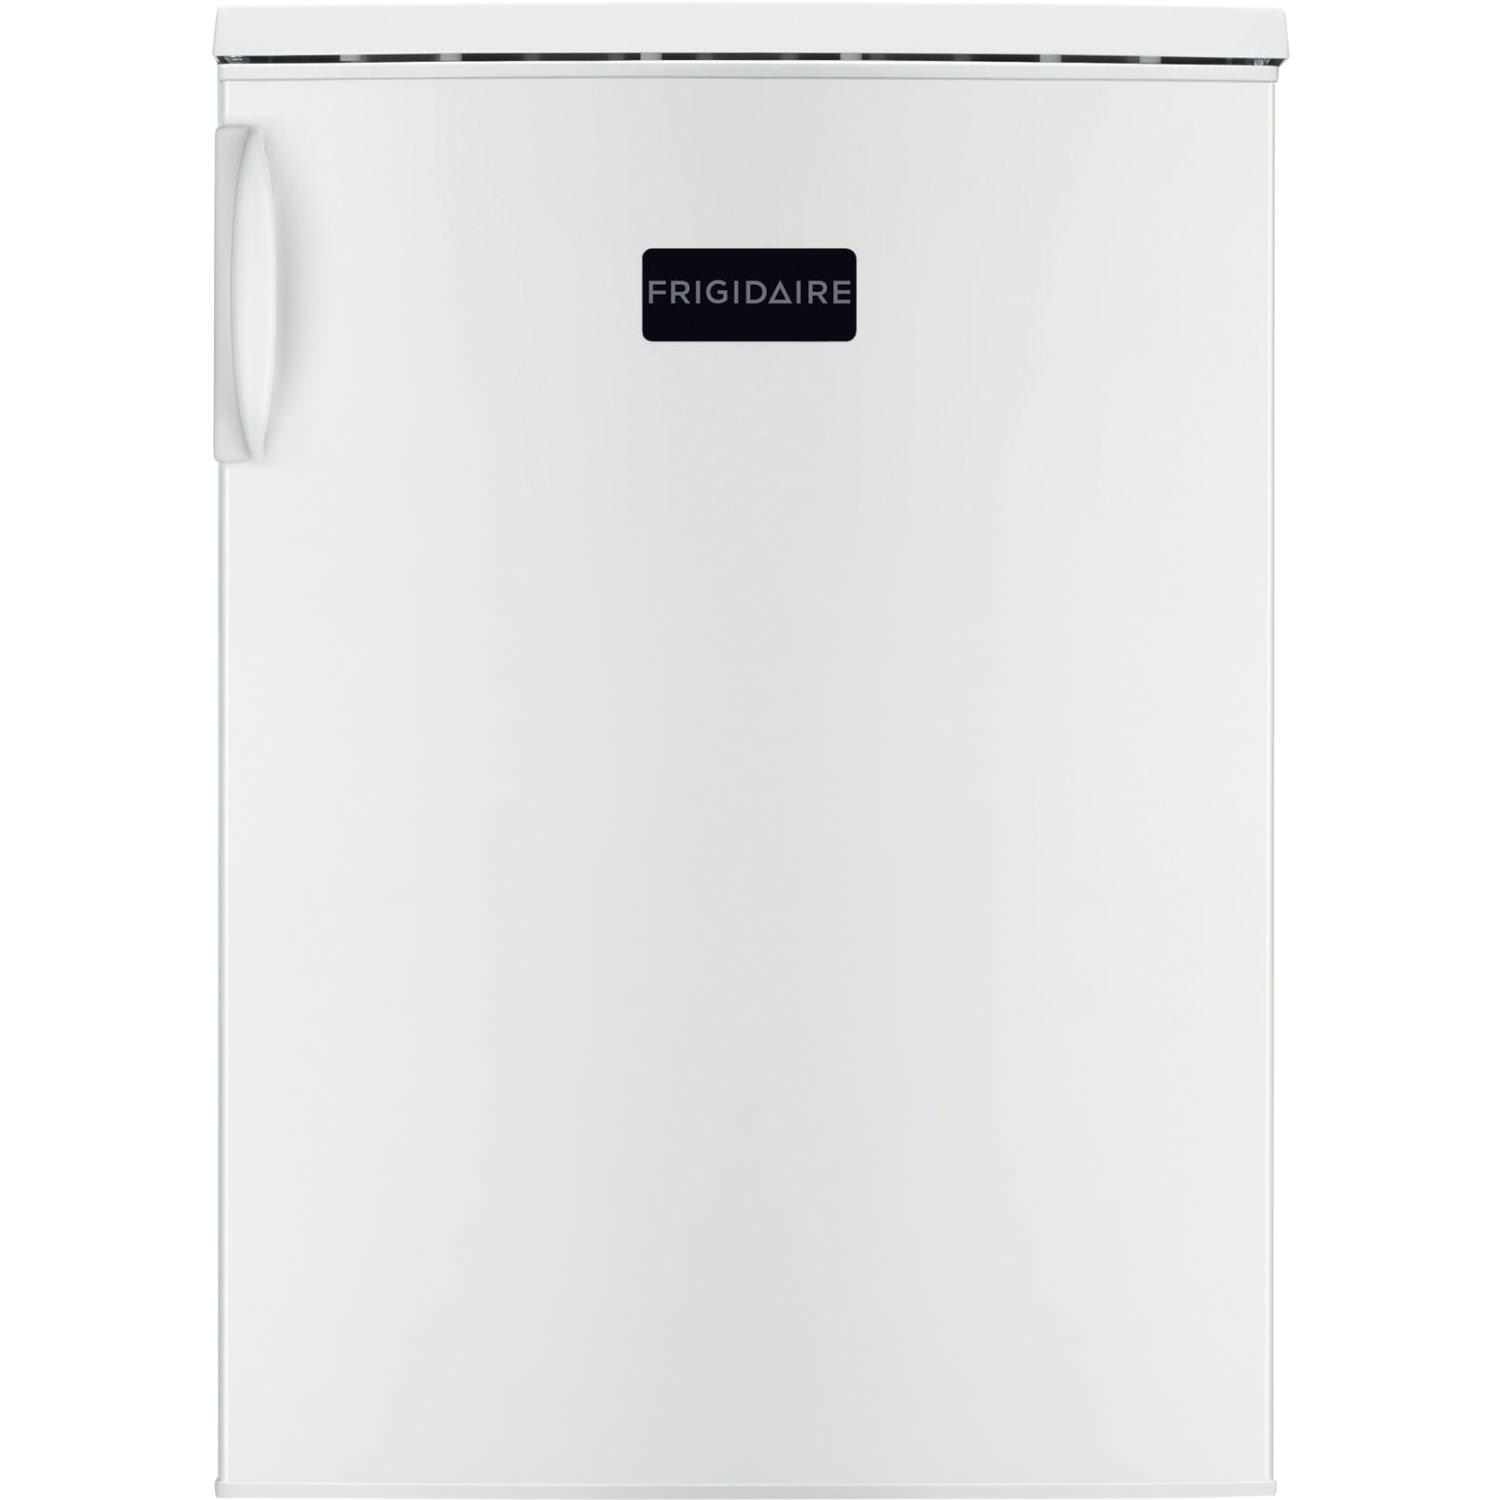 Frigidaire FRLF60W 155 Litre Under Counter Larder Fridge